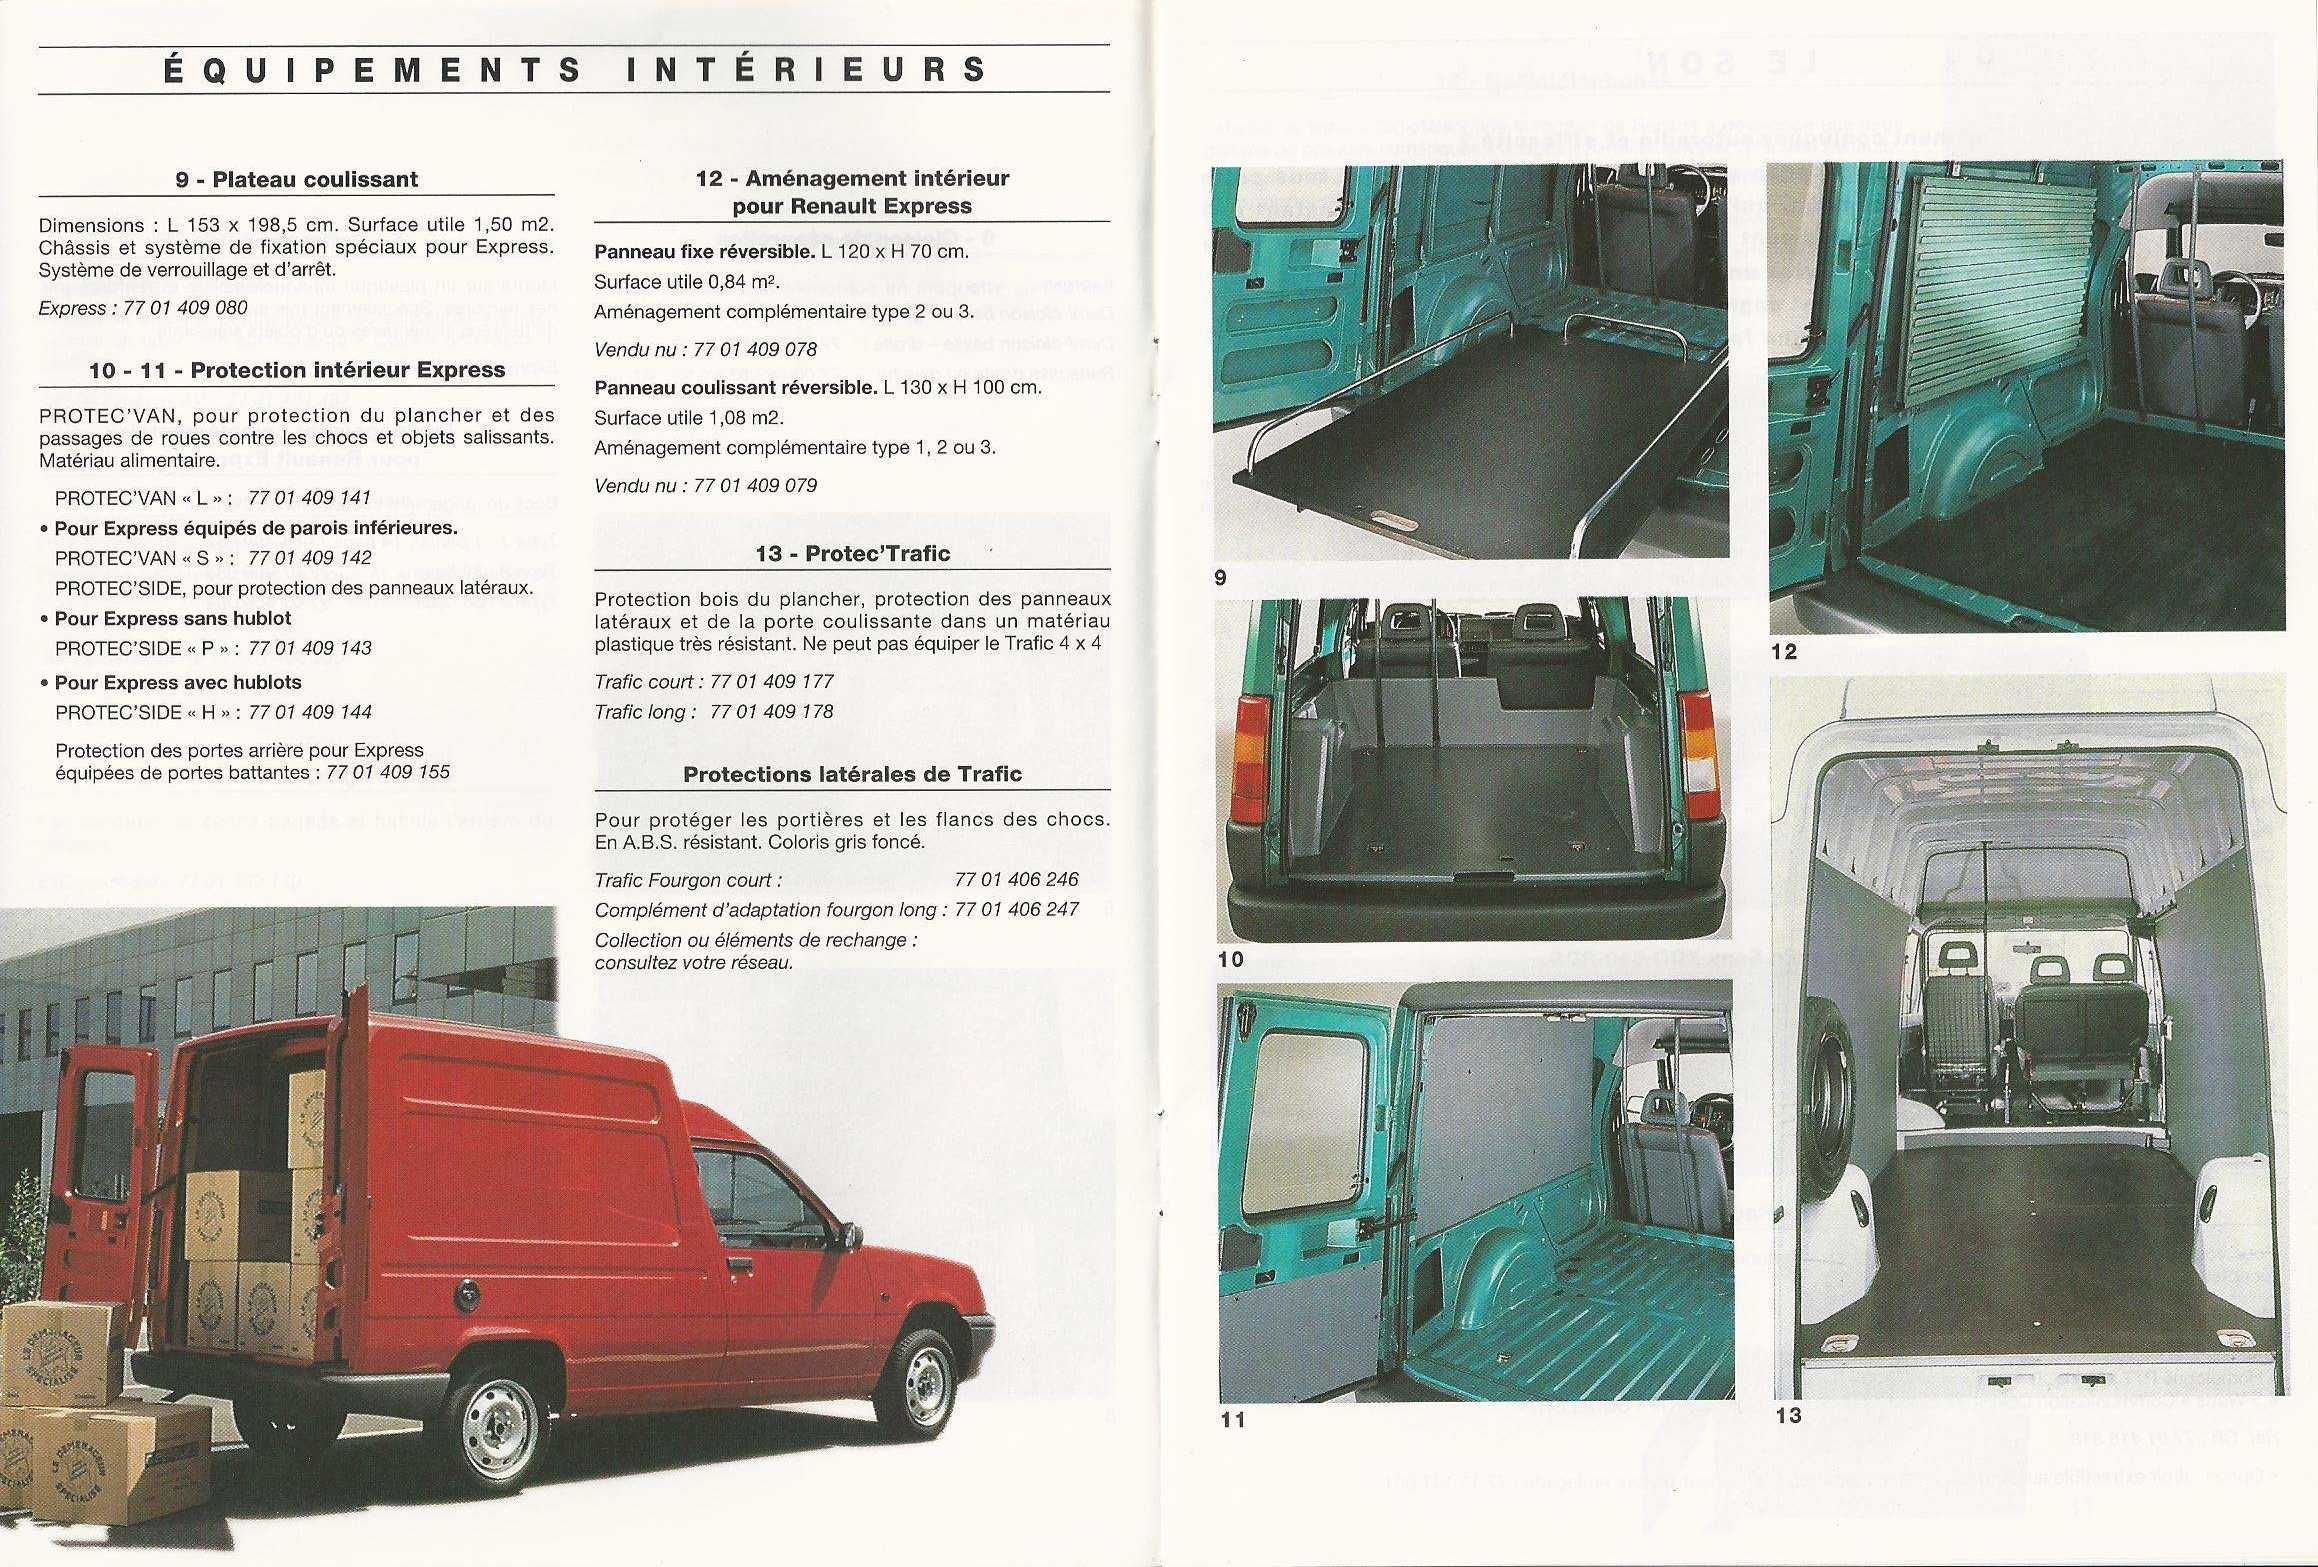 renault vu 1995 4 renault express 1 4 rt 1995 nyvetdupic photos club. Black Bedroom Furniture Sets. Home Design Ideas